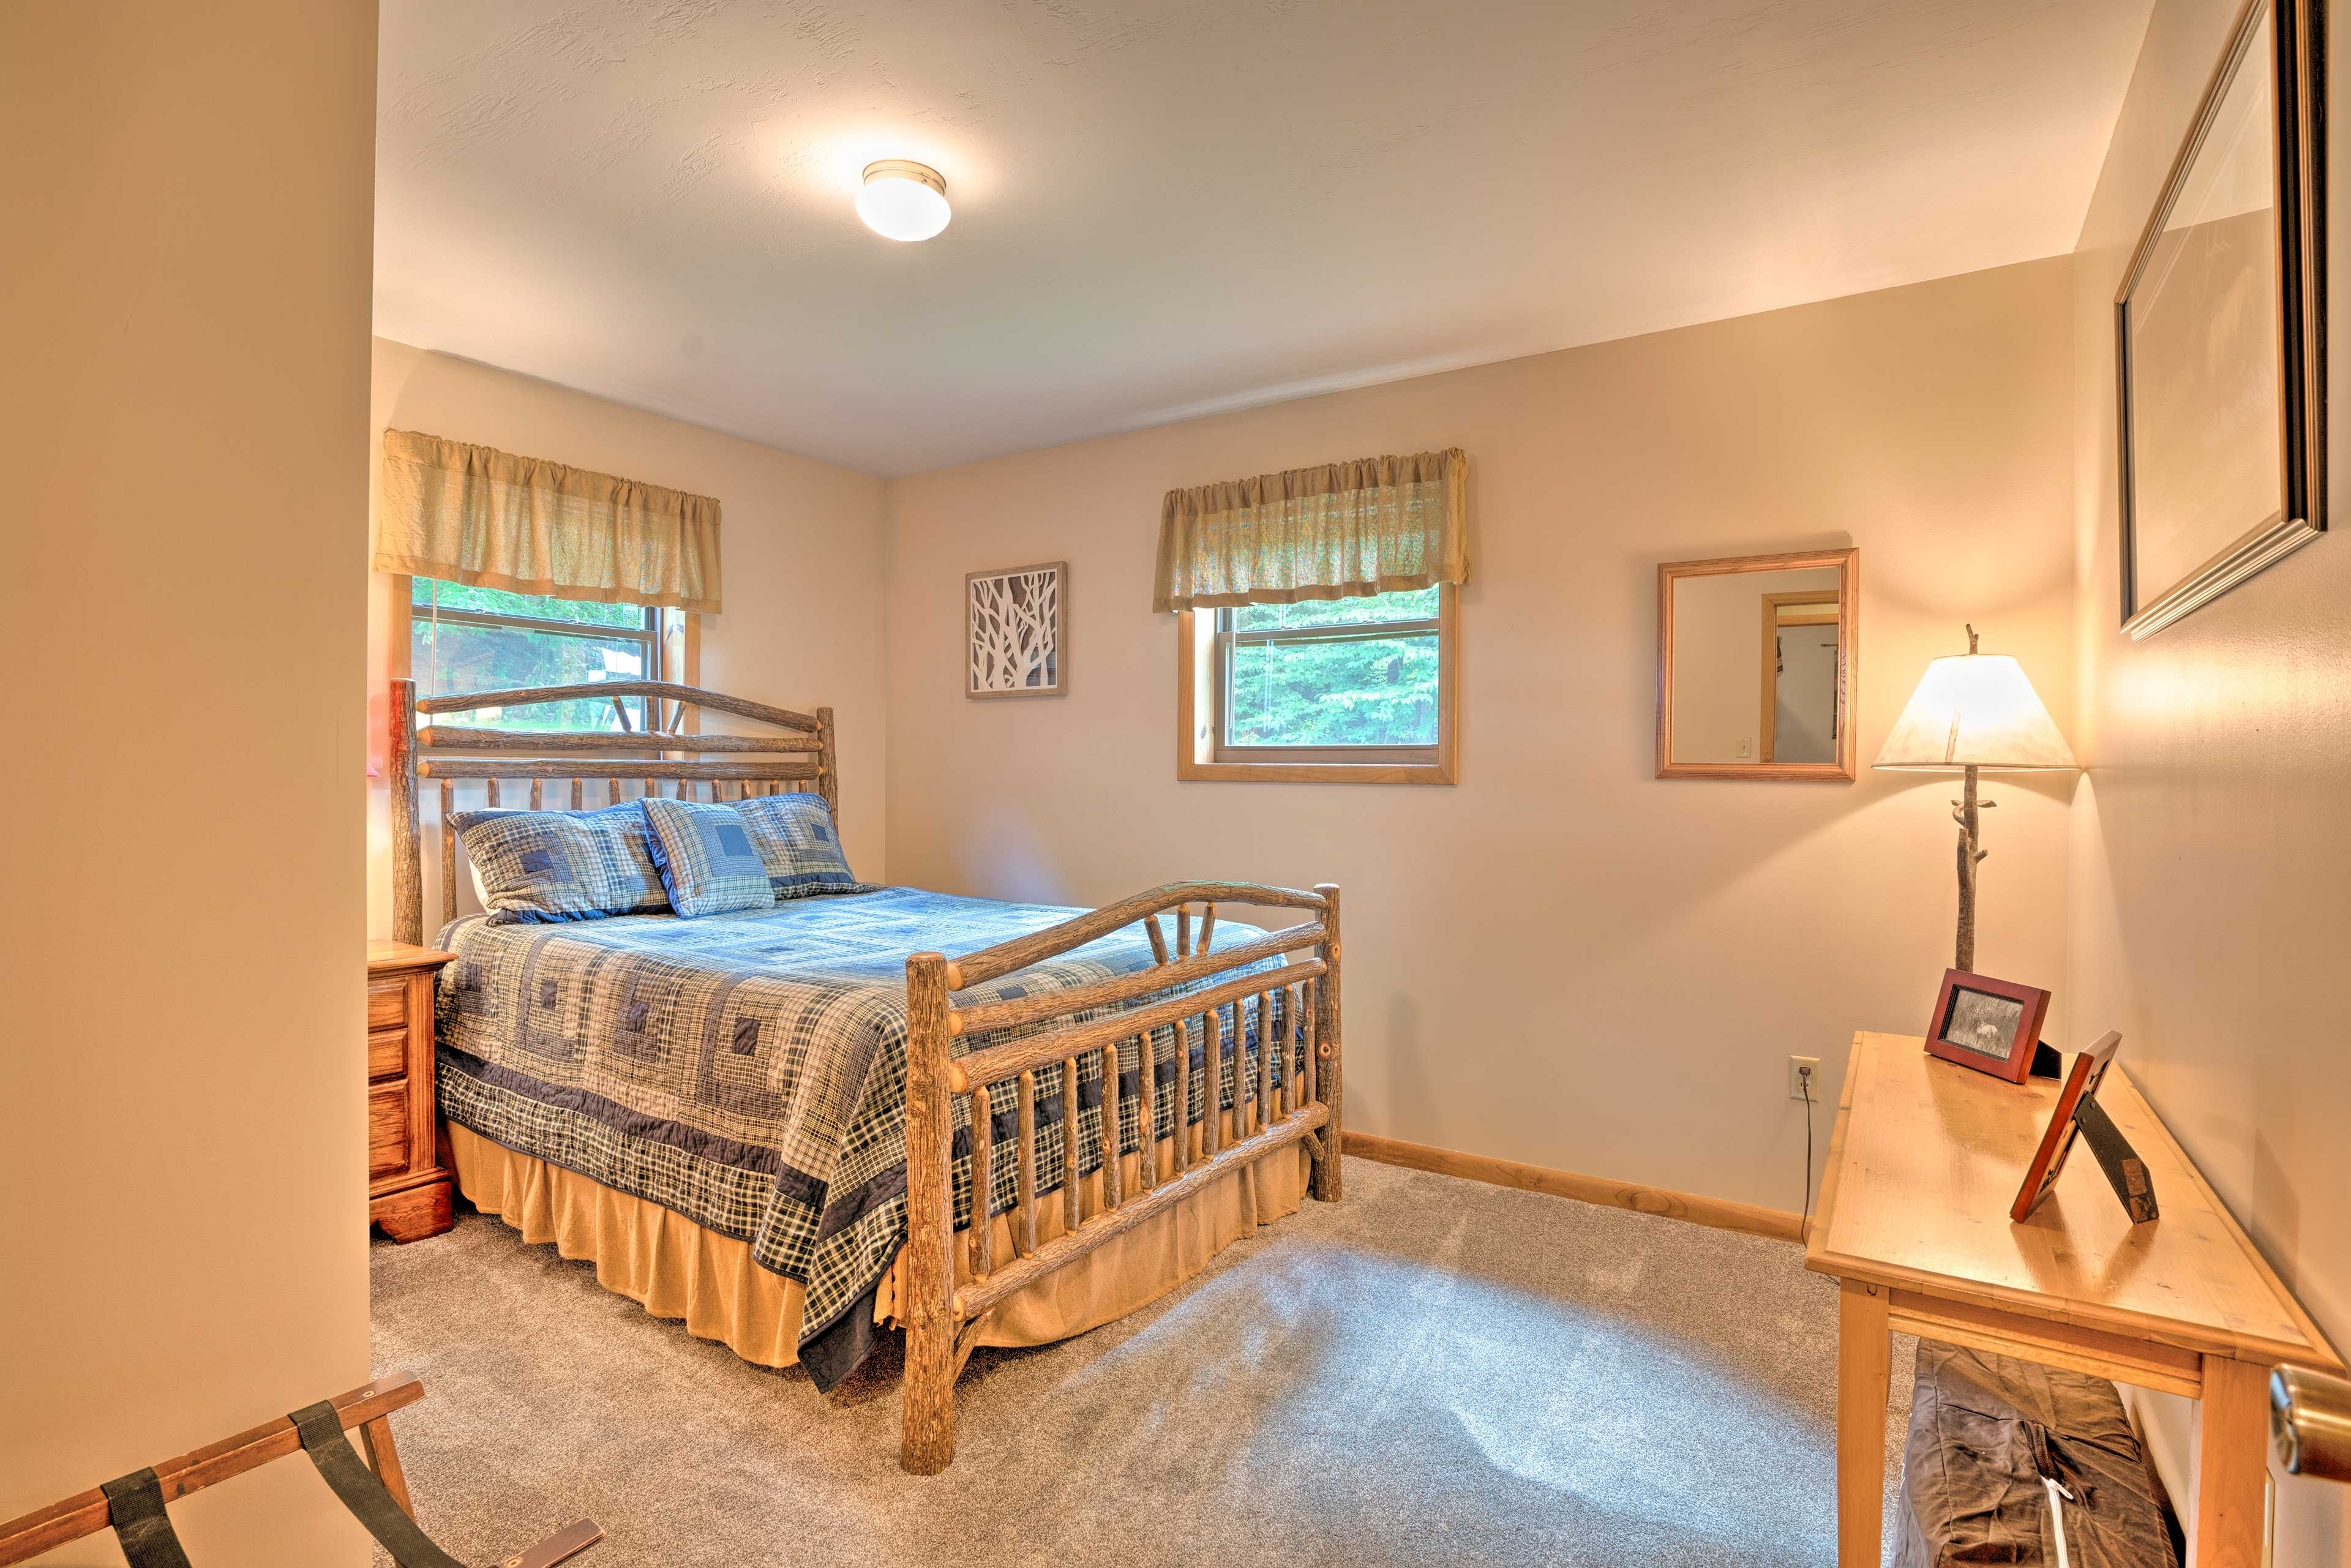 A queen bed highlights this bedroom.